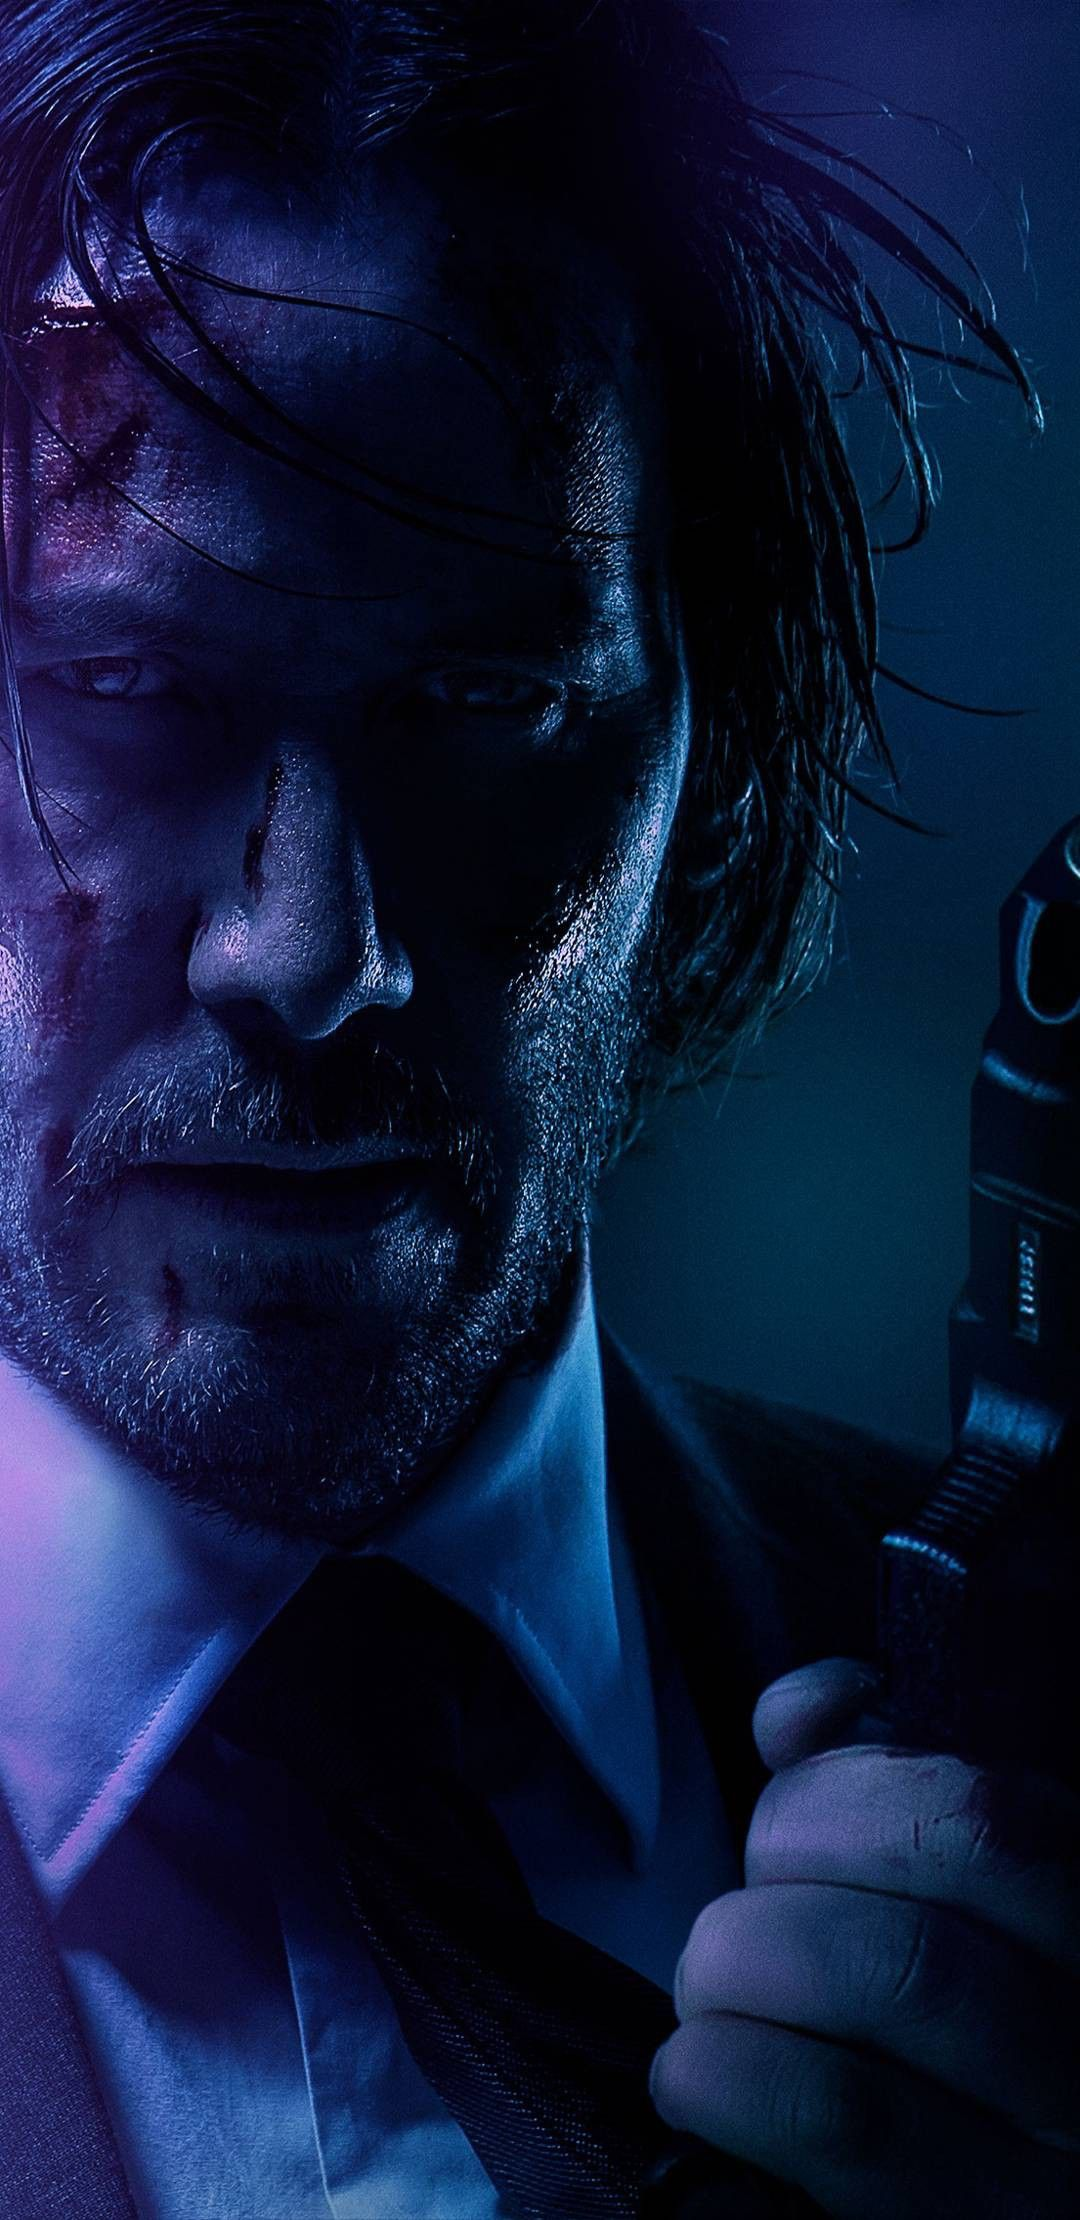 John Wick 2 Wallpaper Zedge John Wick Movie John Wick Hd Keanu Reeves John Wick